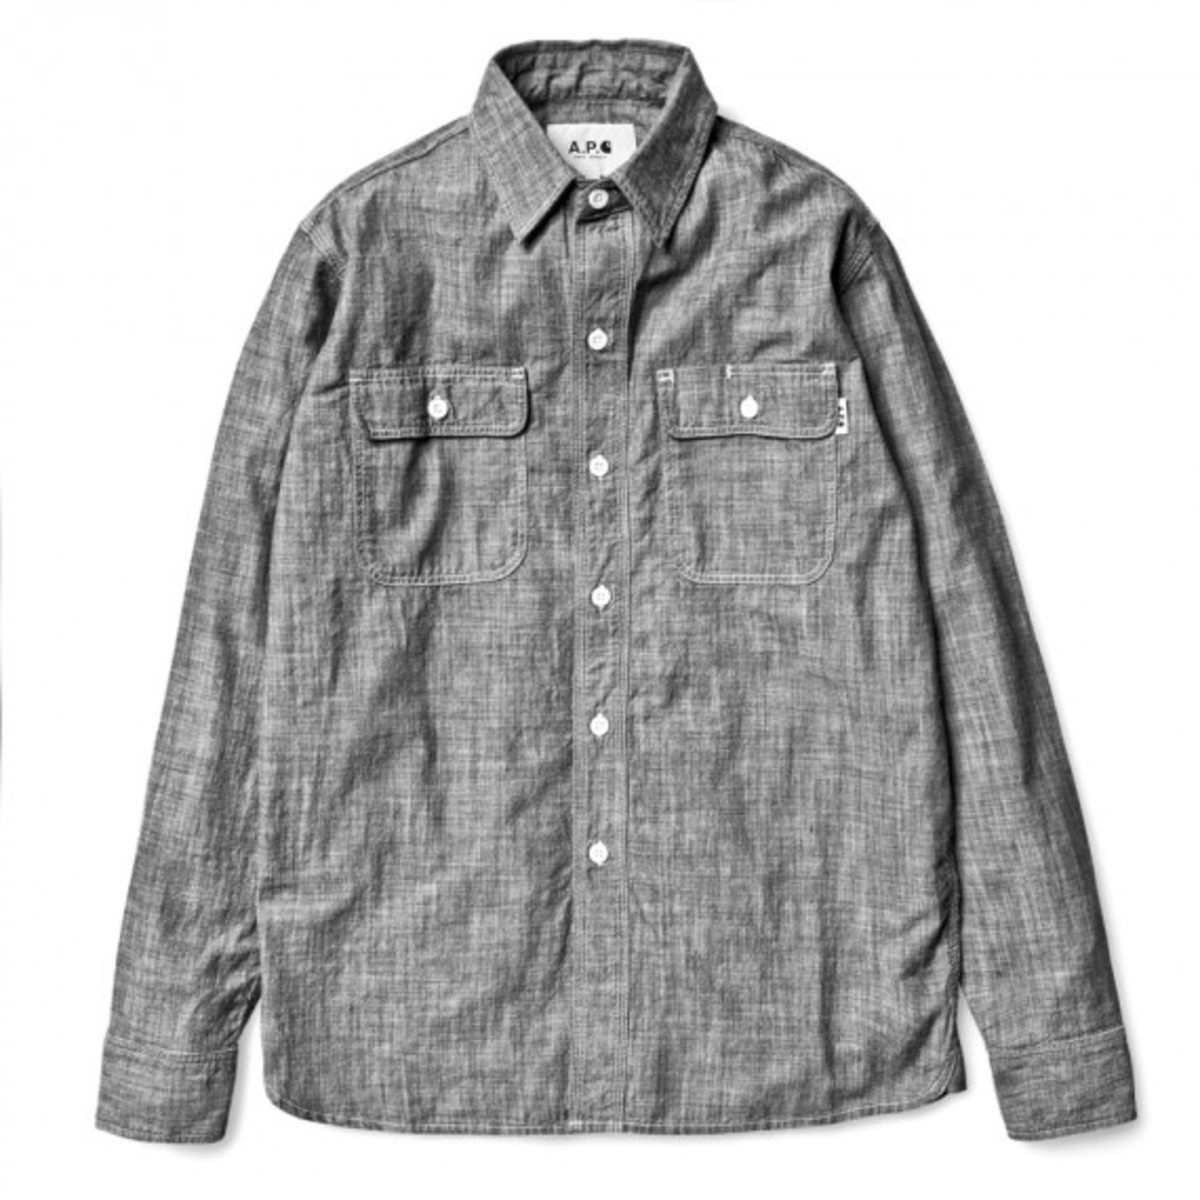 carhartt-apc-chambray-shirt-01